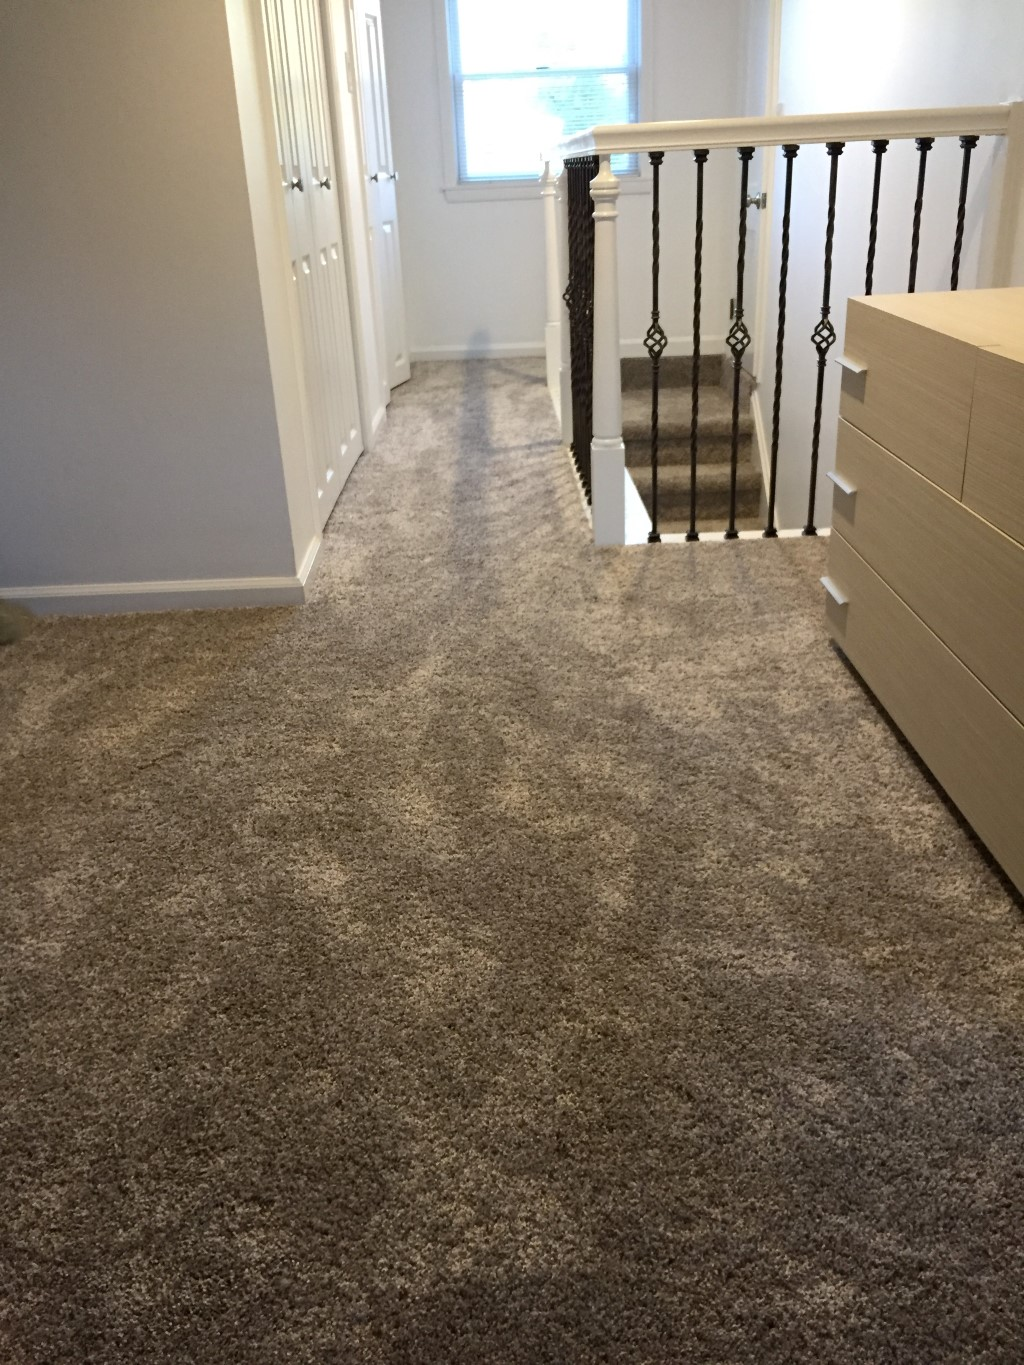 Master Bedroom Softer Earth Tone Carpet With Higher